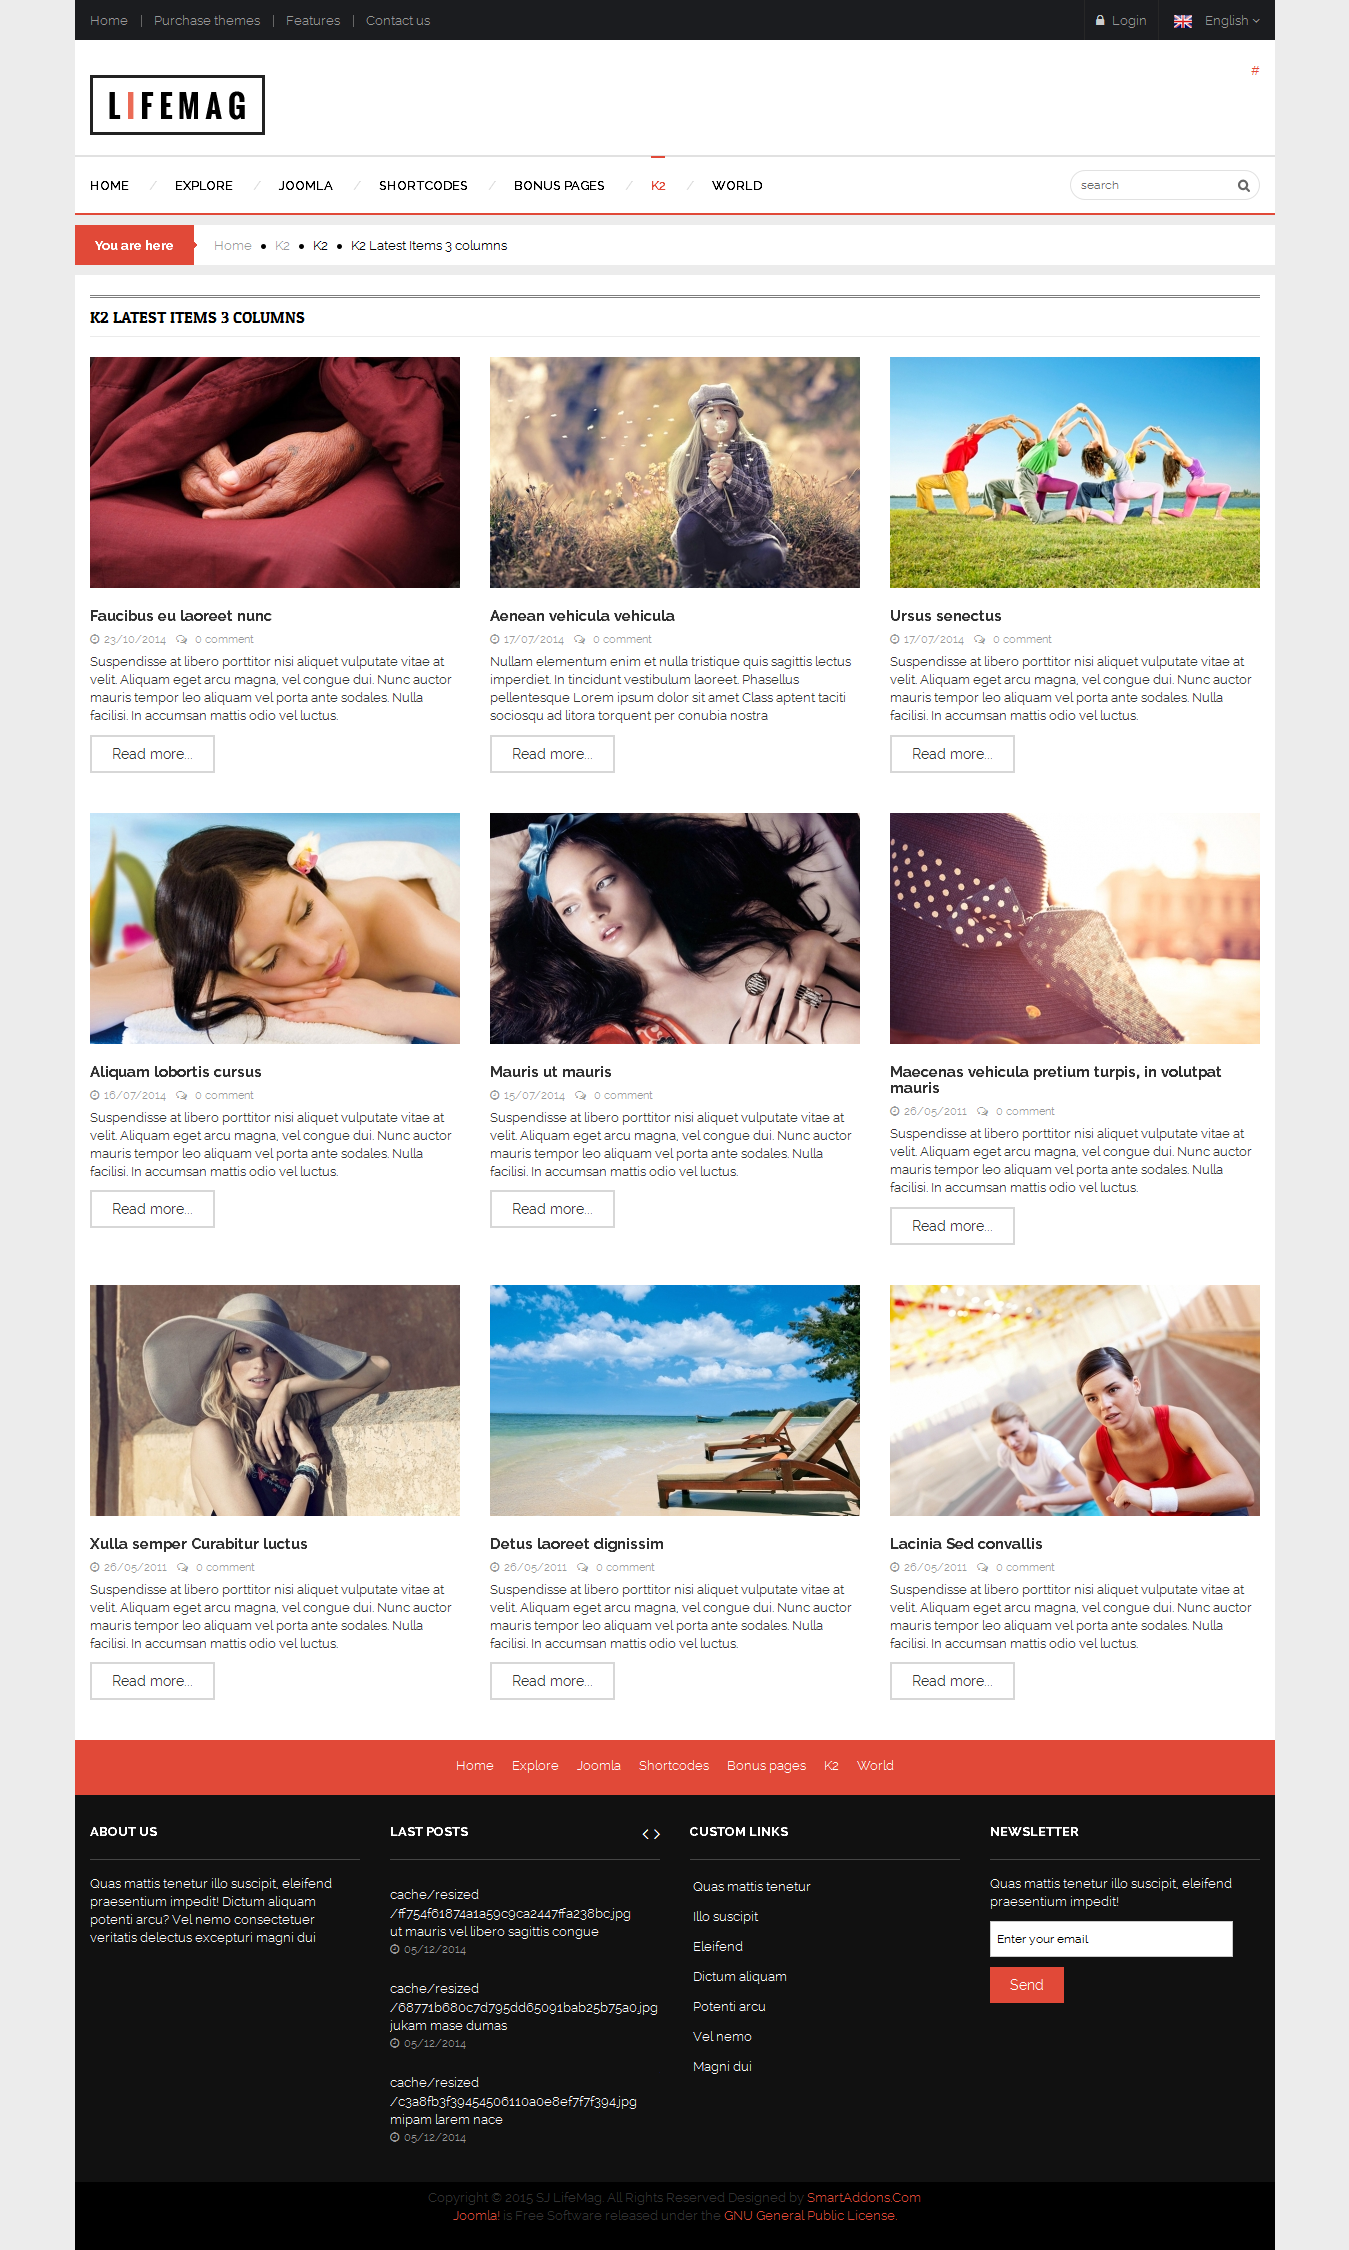 SJ LifeMag - Responsive Joomla News Magazine Template - 06_latest-item-3col.png